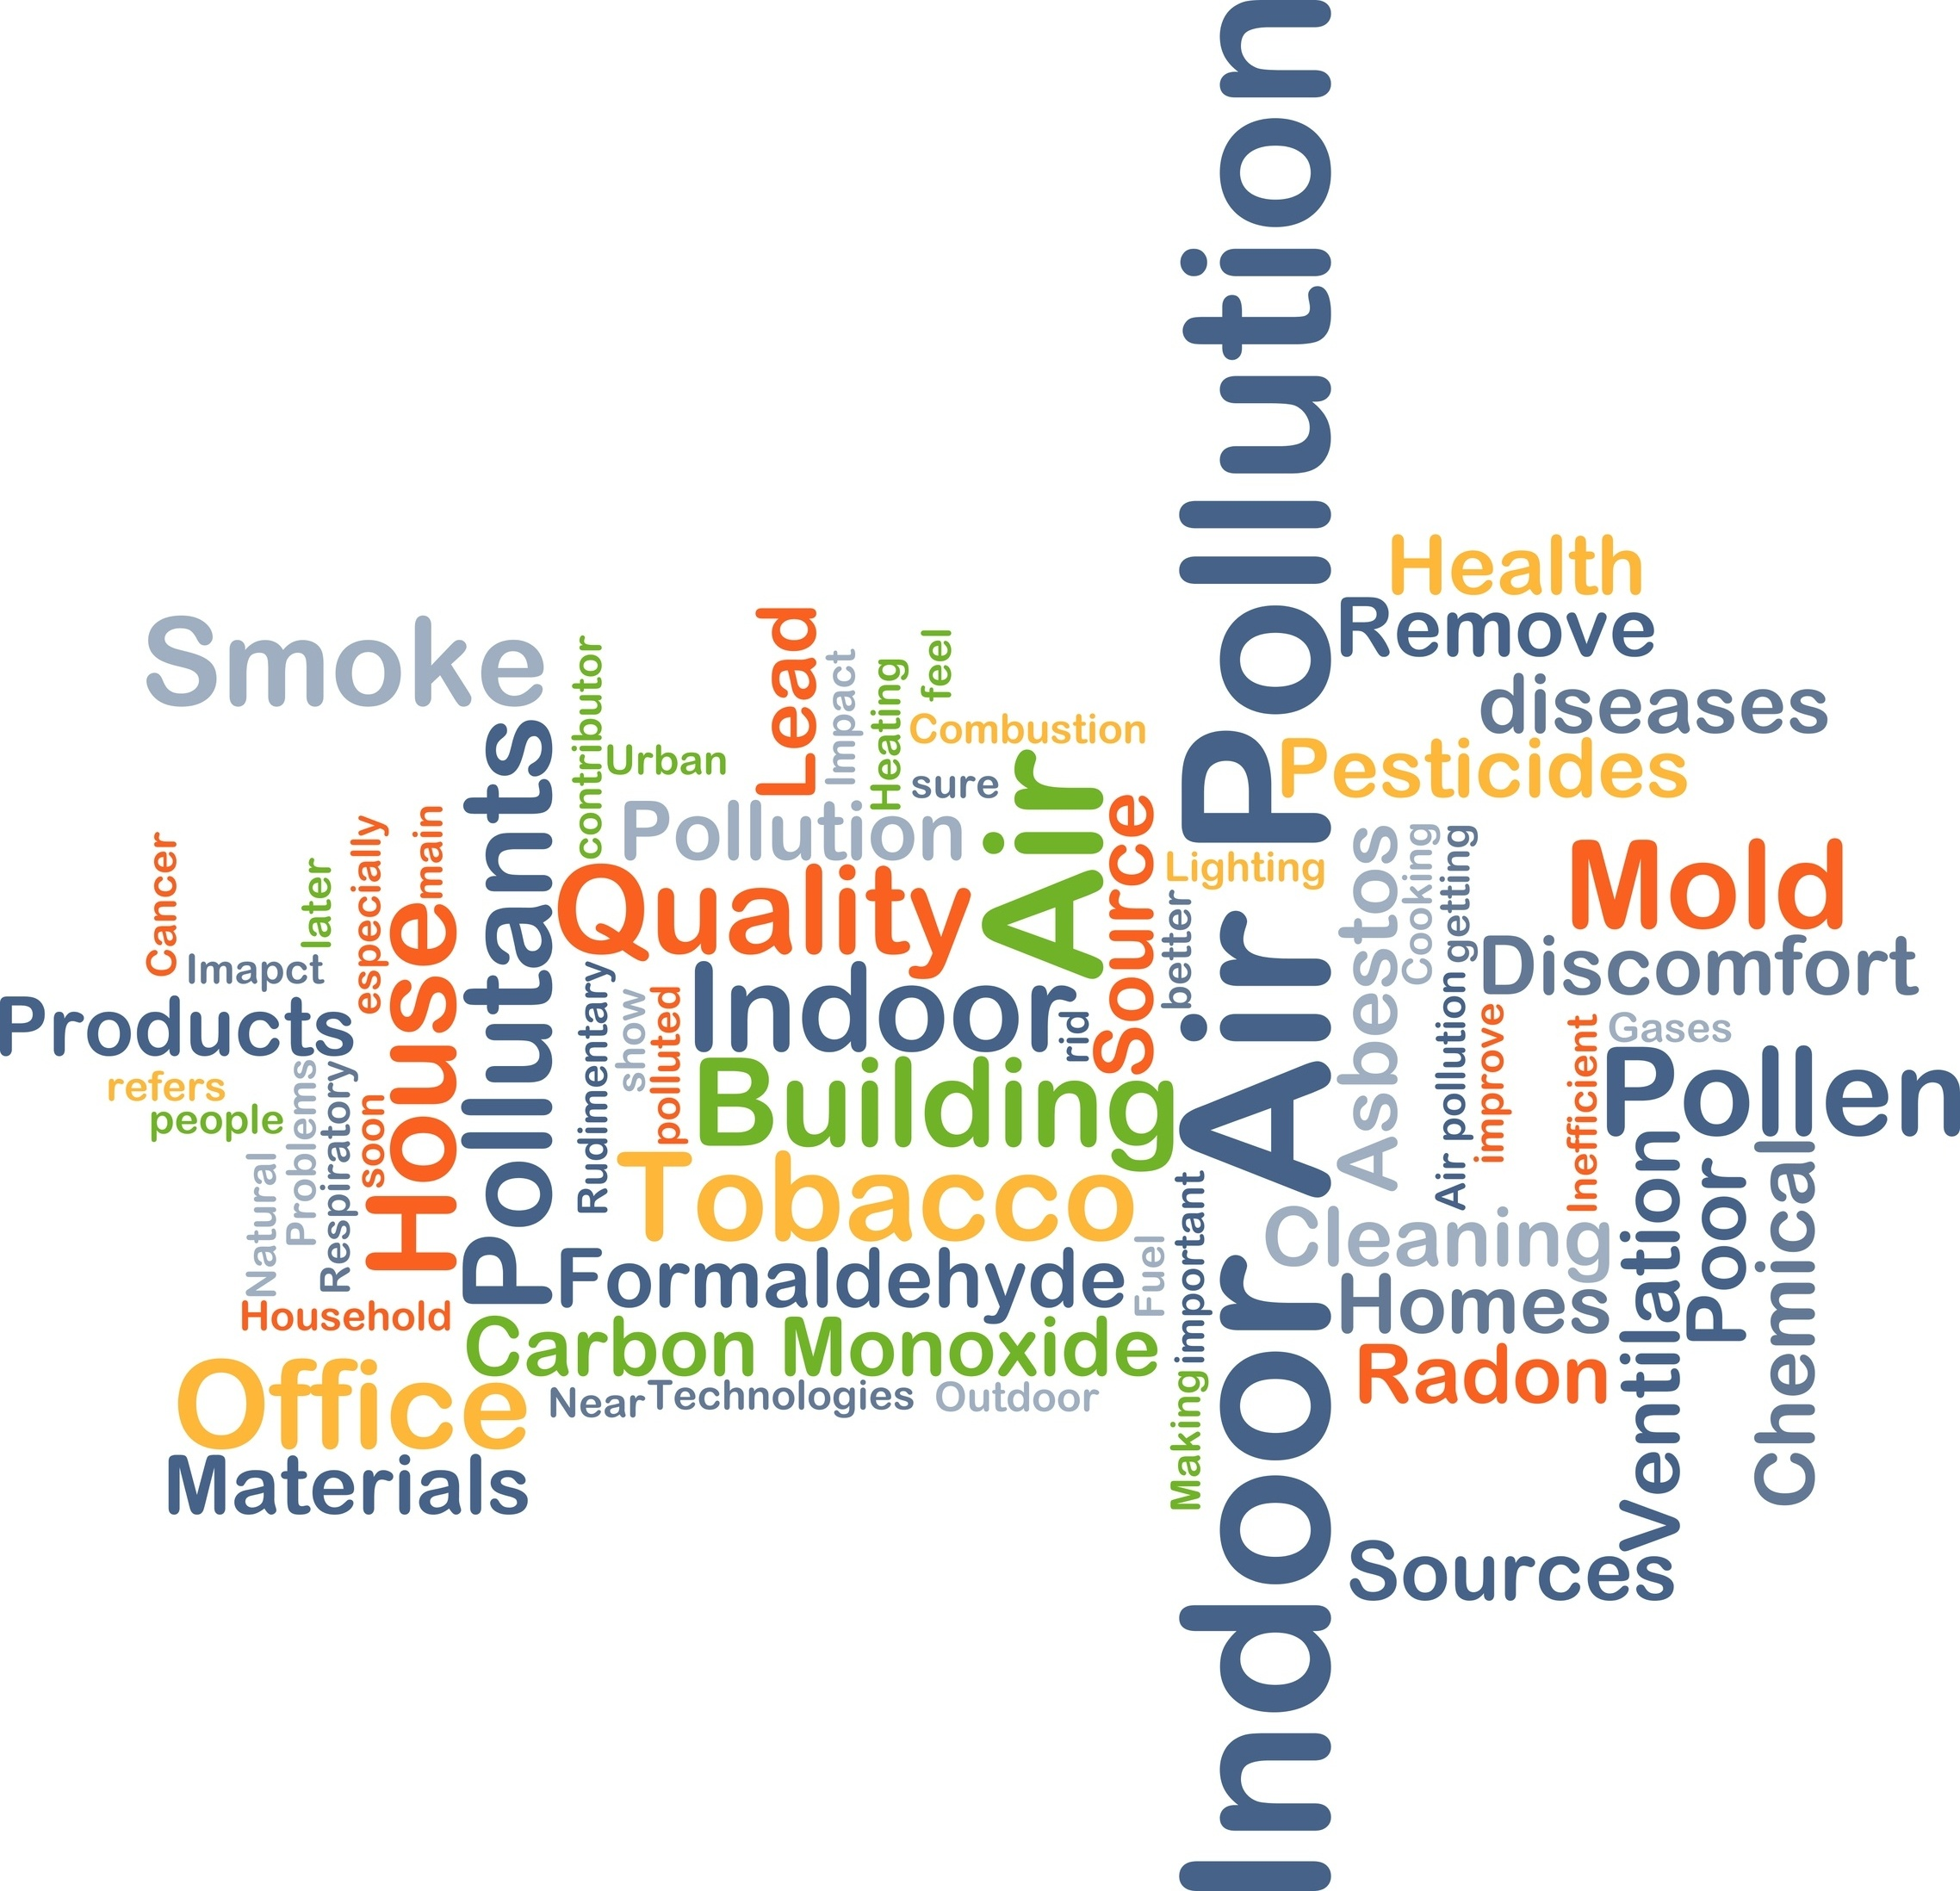 Indoor Air Quality Word Map-174687-edited.jpg